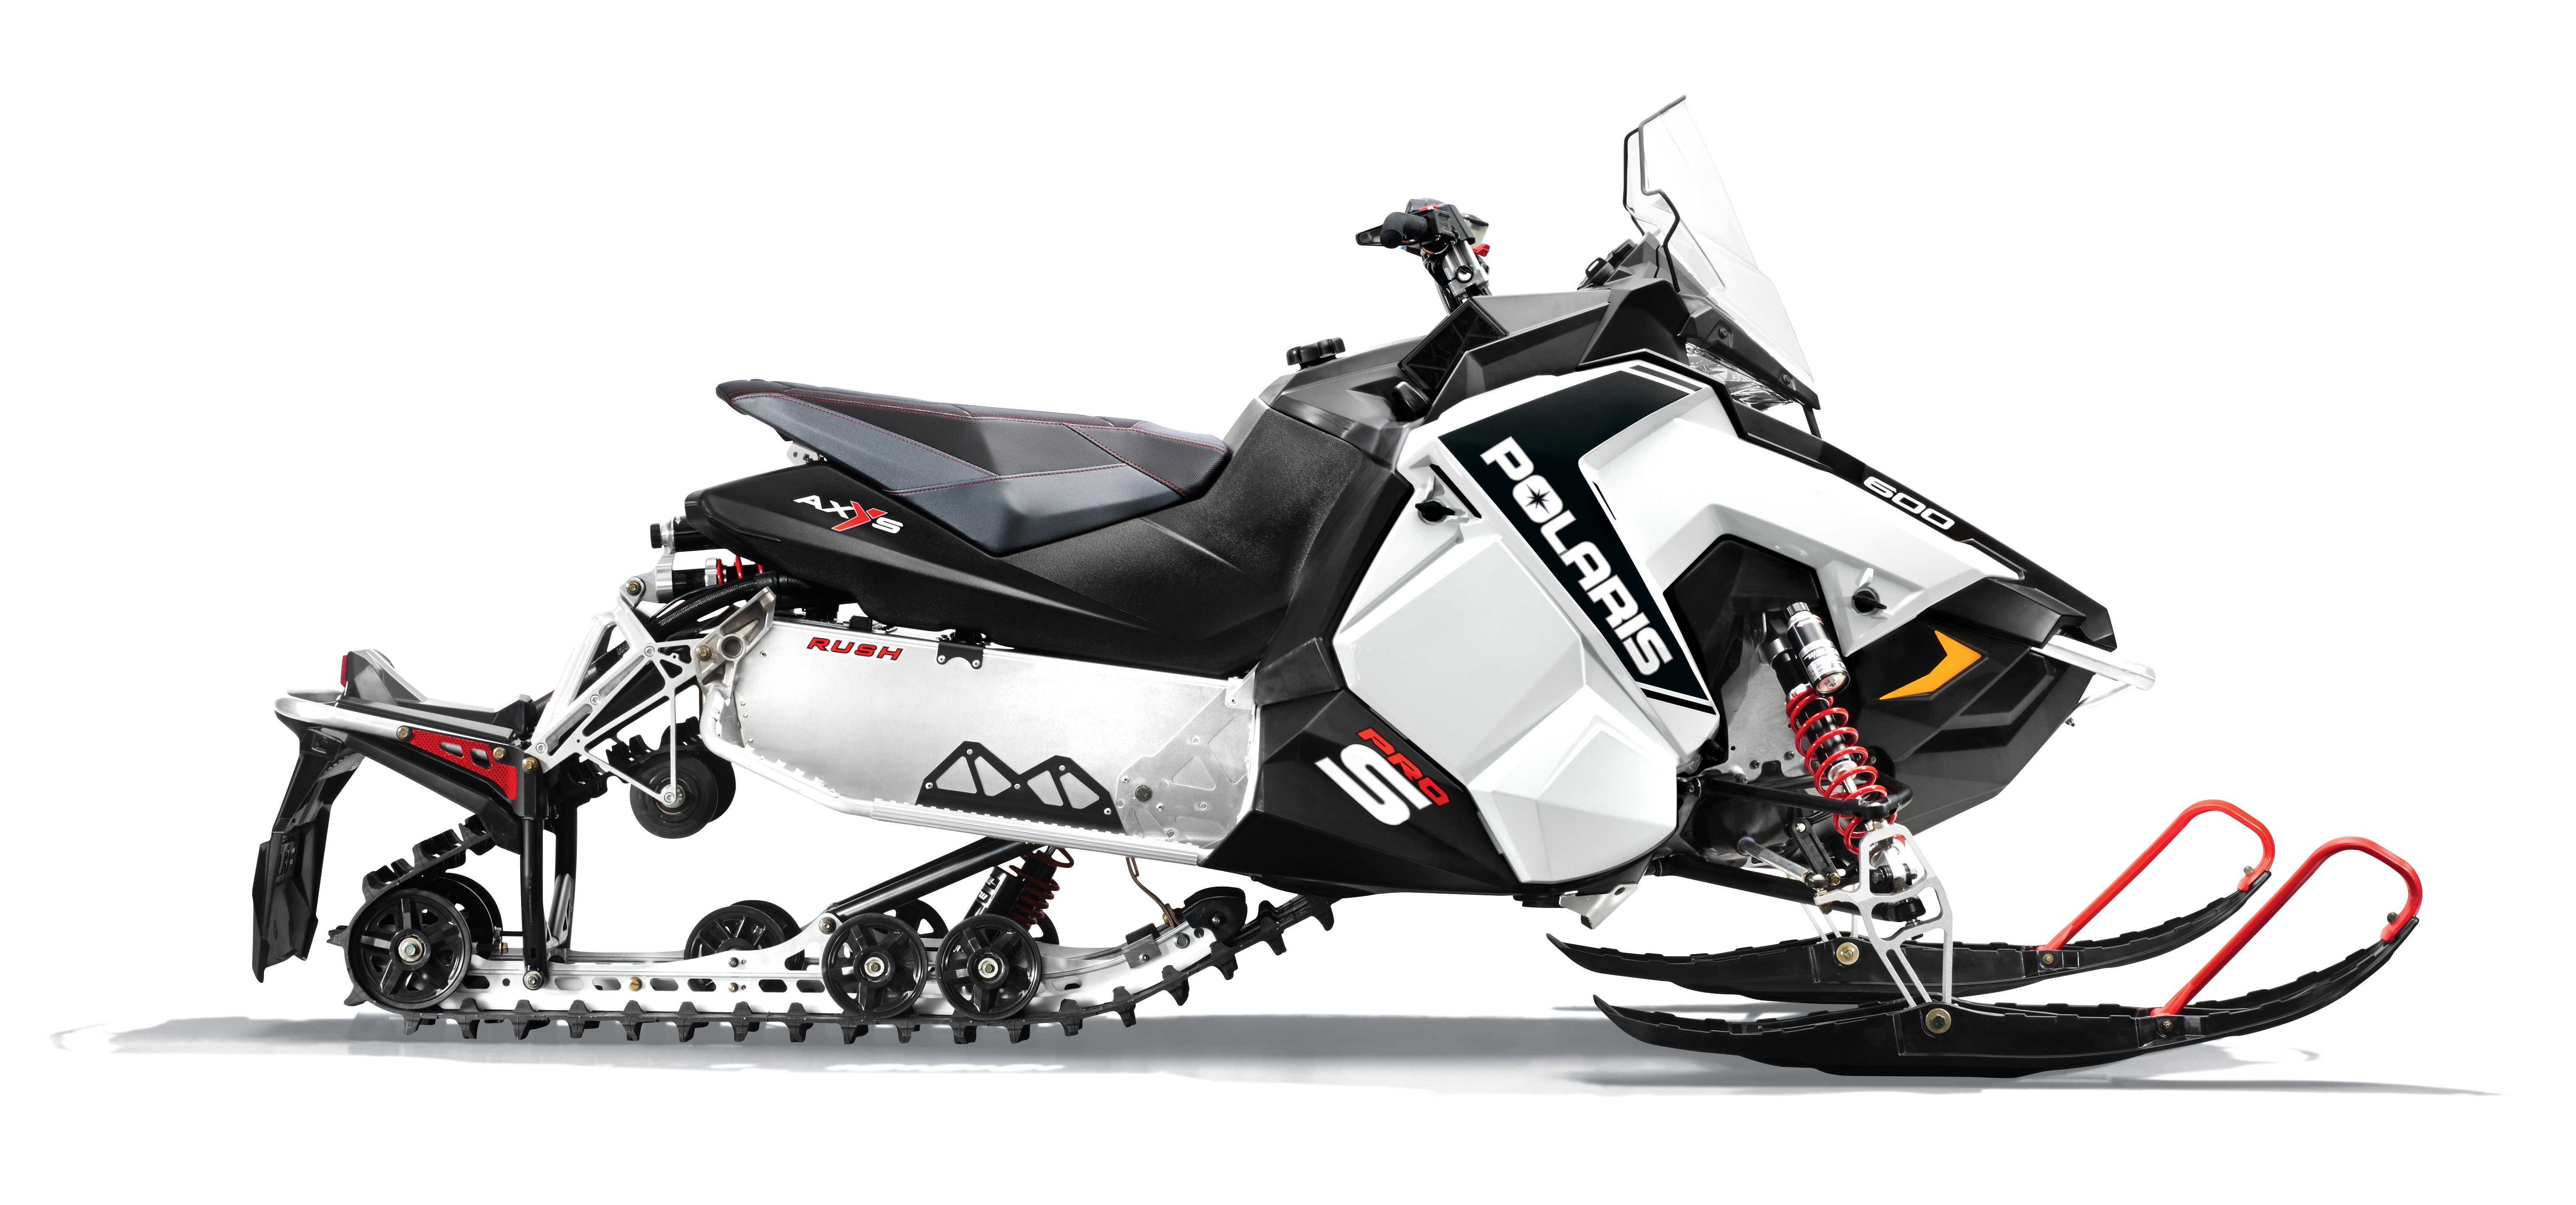 Snowmobiles For Sale By Owner >> POLARIS 800 SWITCHBACK snowmobile sled atv (9) wallpaper   6140x2872   344434   WallpaperUP